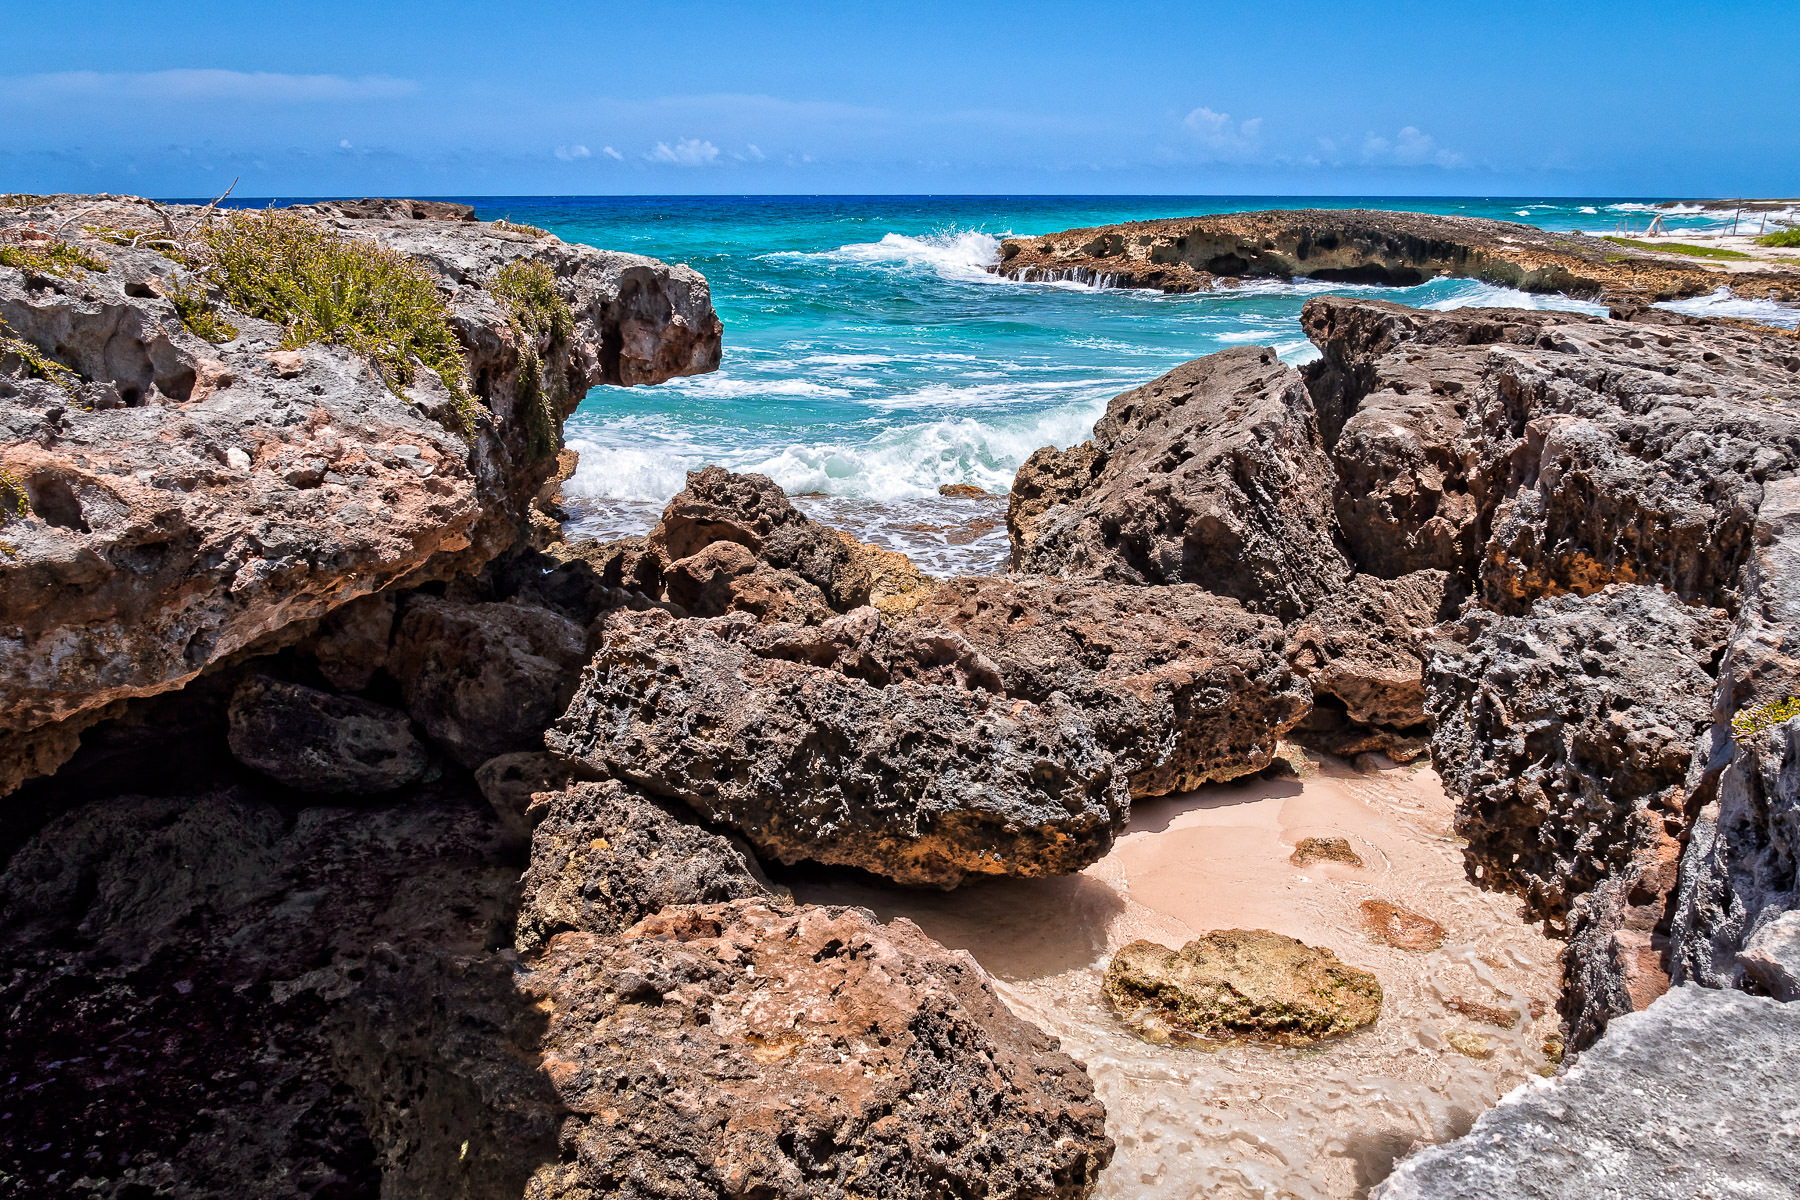 Surf swirls around the rocky shore at El Mirador, Cozumel, Mexico.